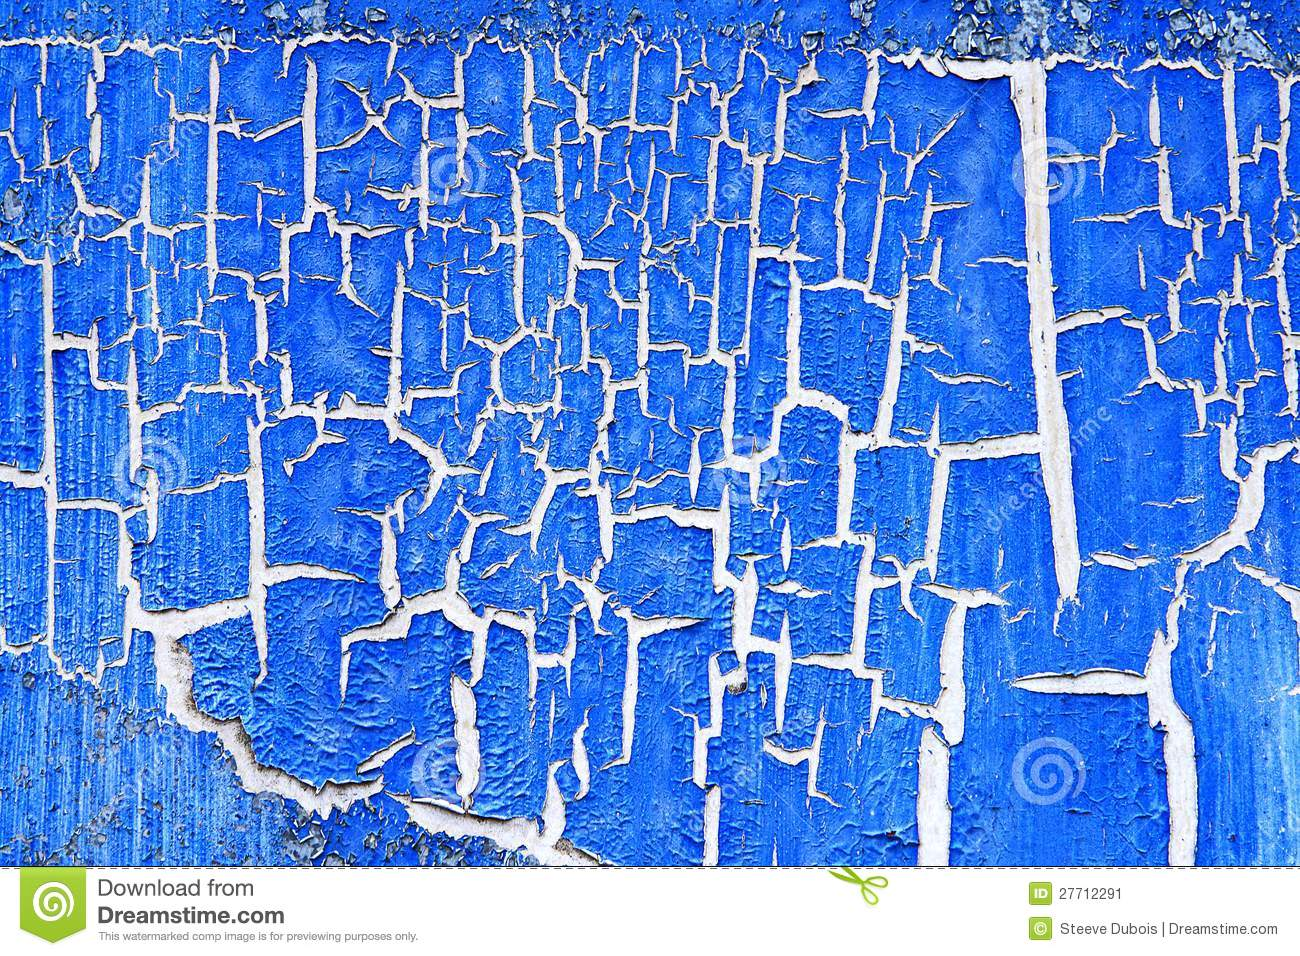 Blue Paint peeling blue paint stock image - image: 27712291